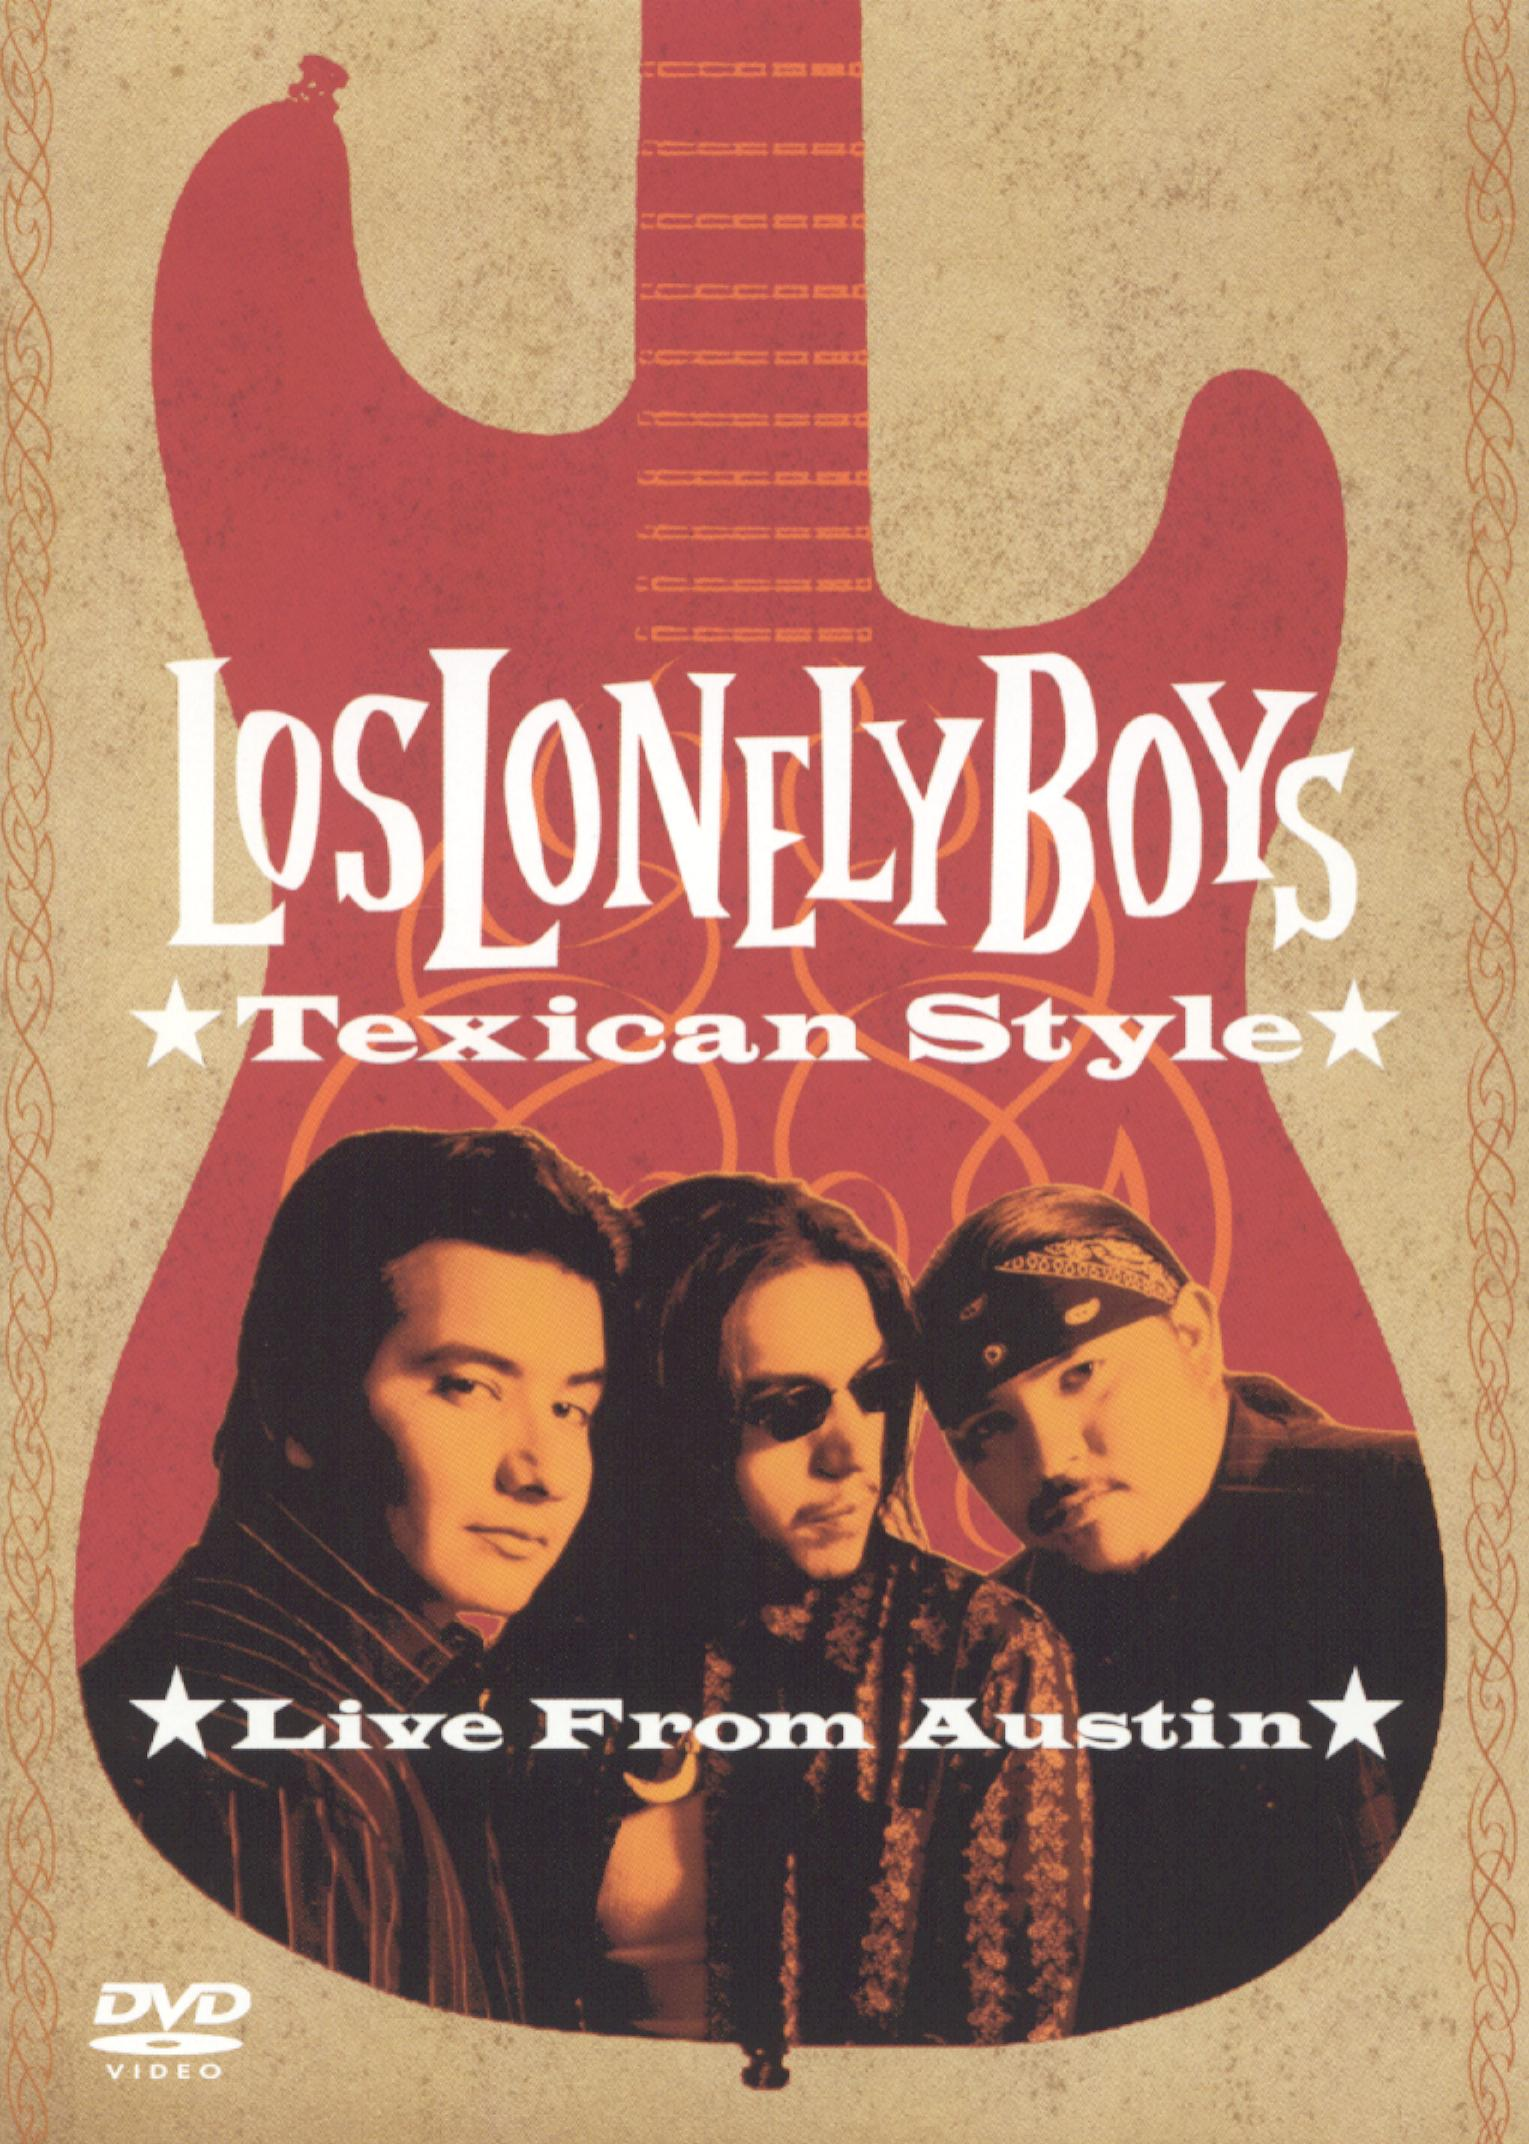 Los Lonely Boys: Texican Style - Live From Austin